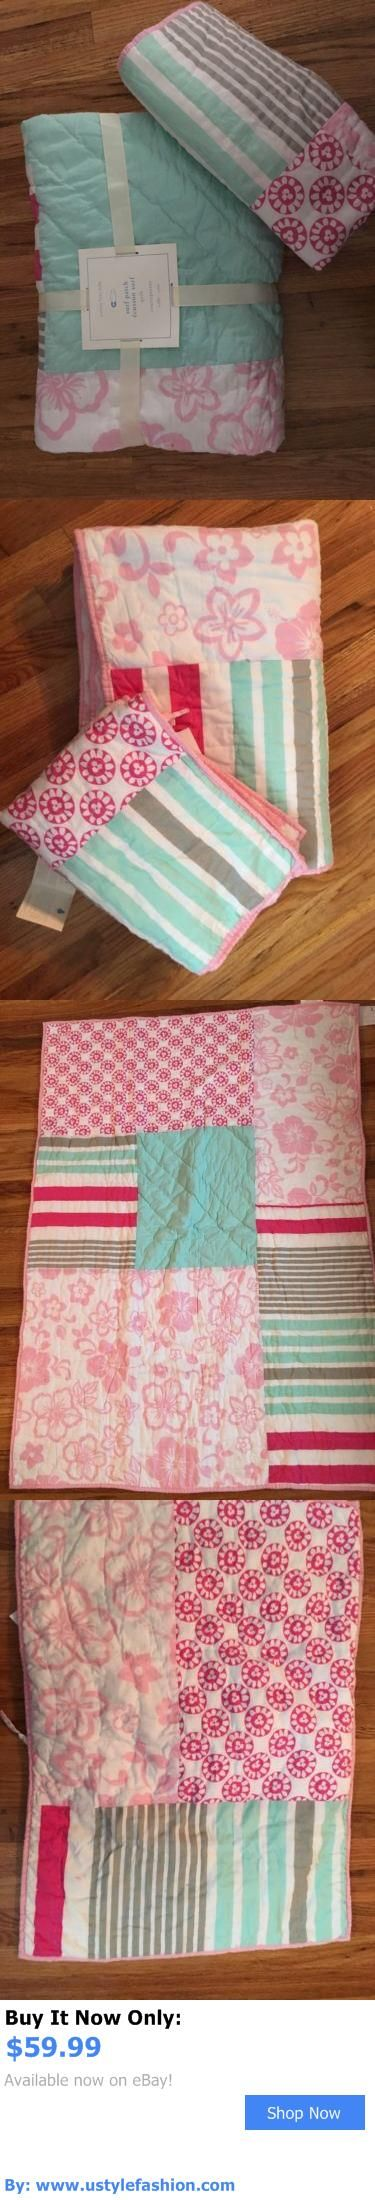 Quilts And Coverlets: Pottery Barn Kids Surf Patch Toddler Quilt And Sham Pink Crib Girls Hibiscus Surf BUY IT NOW ONLY: $59.99 #ustylefashionQuiltsAndCoverlets OR #ustylefashion